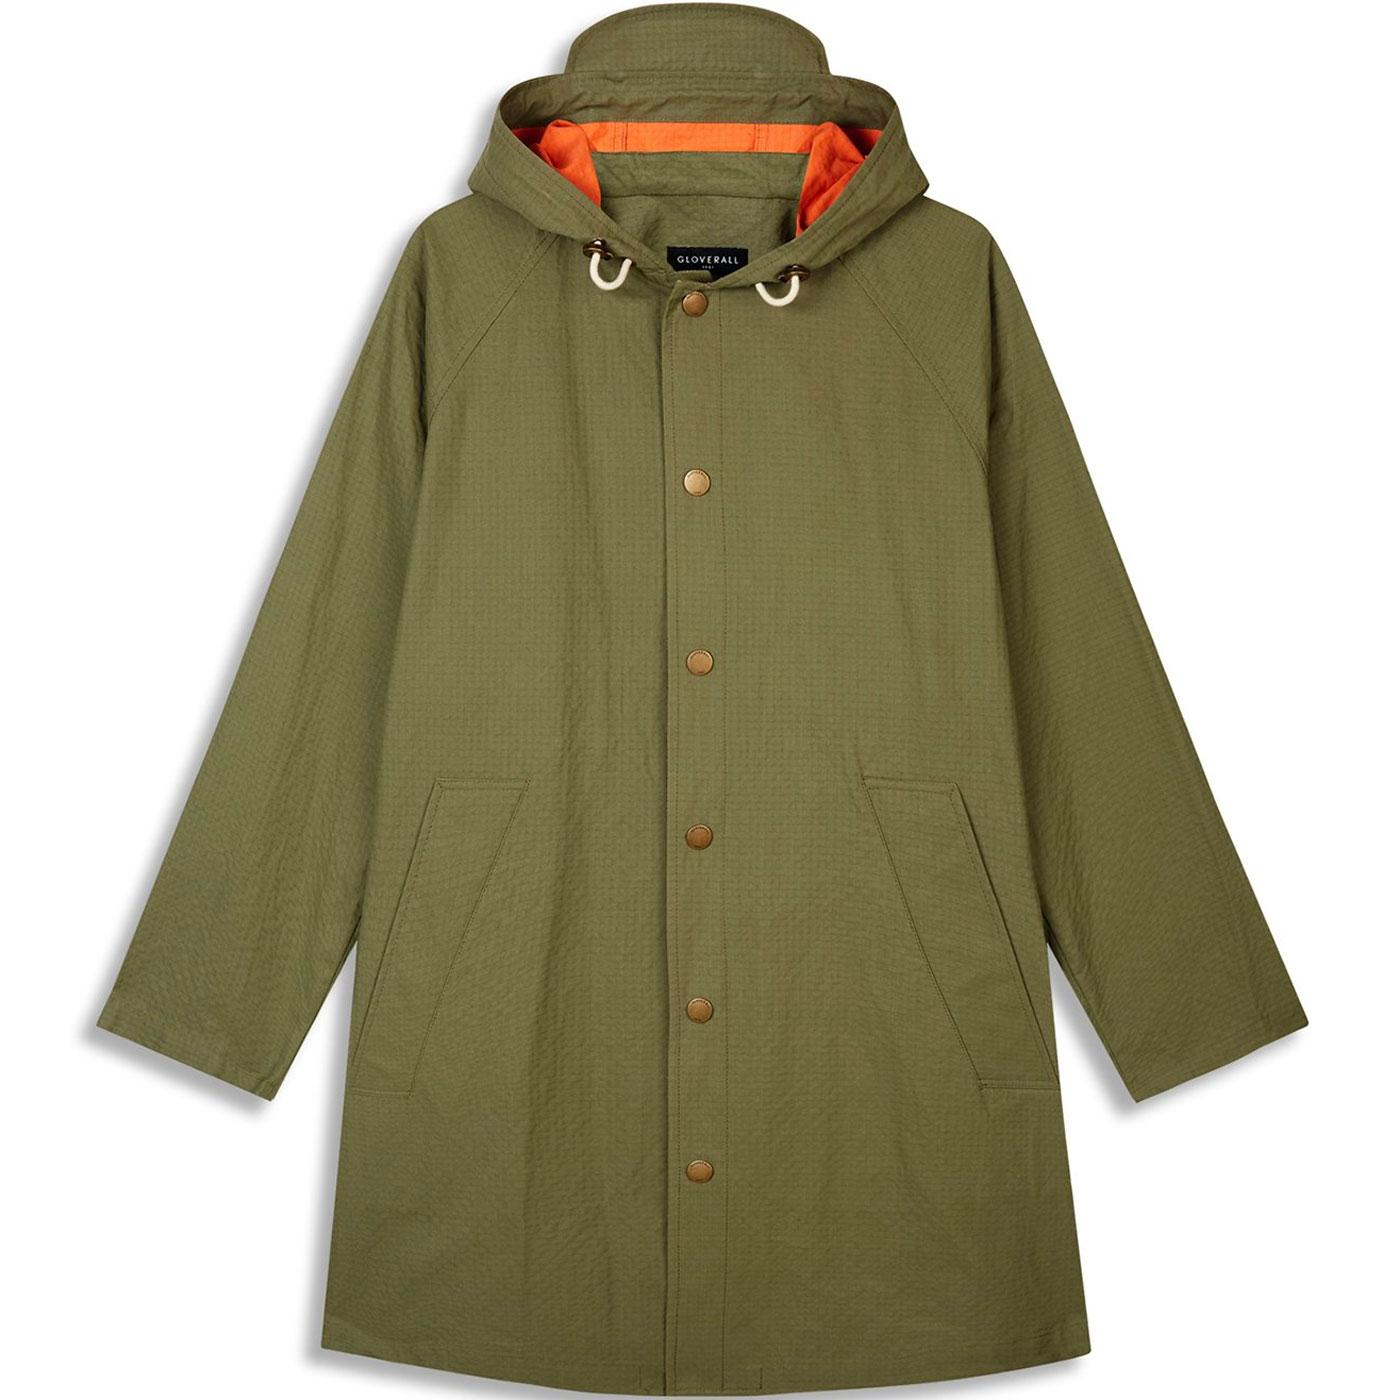 Billie GLOVERALL 60s Mod Resin Coated Parka KHAKI